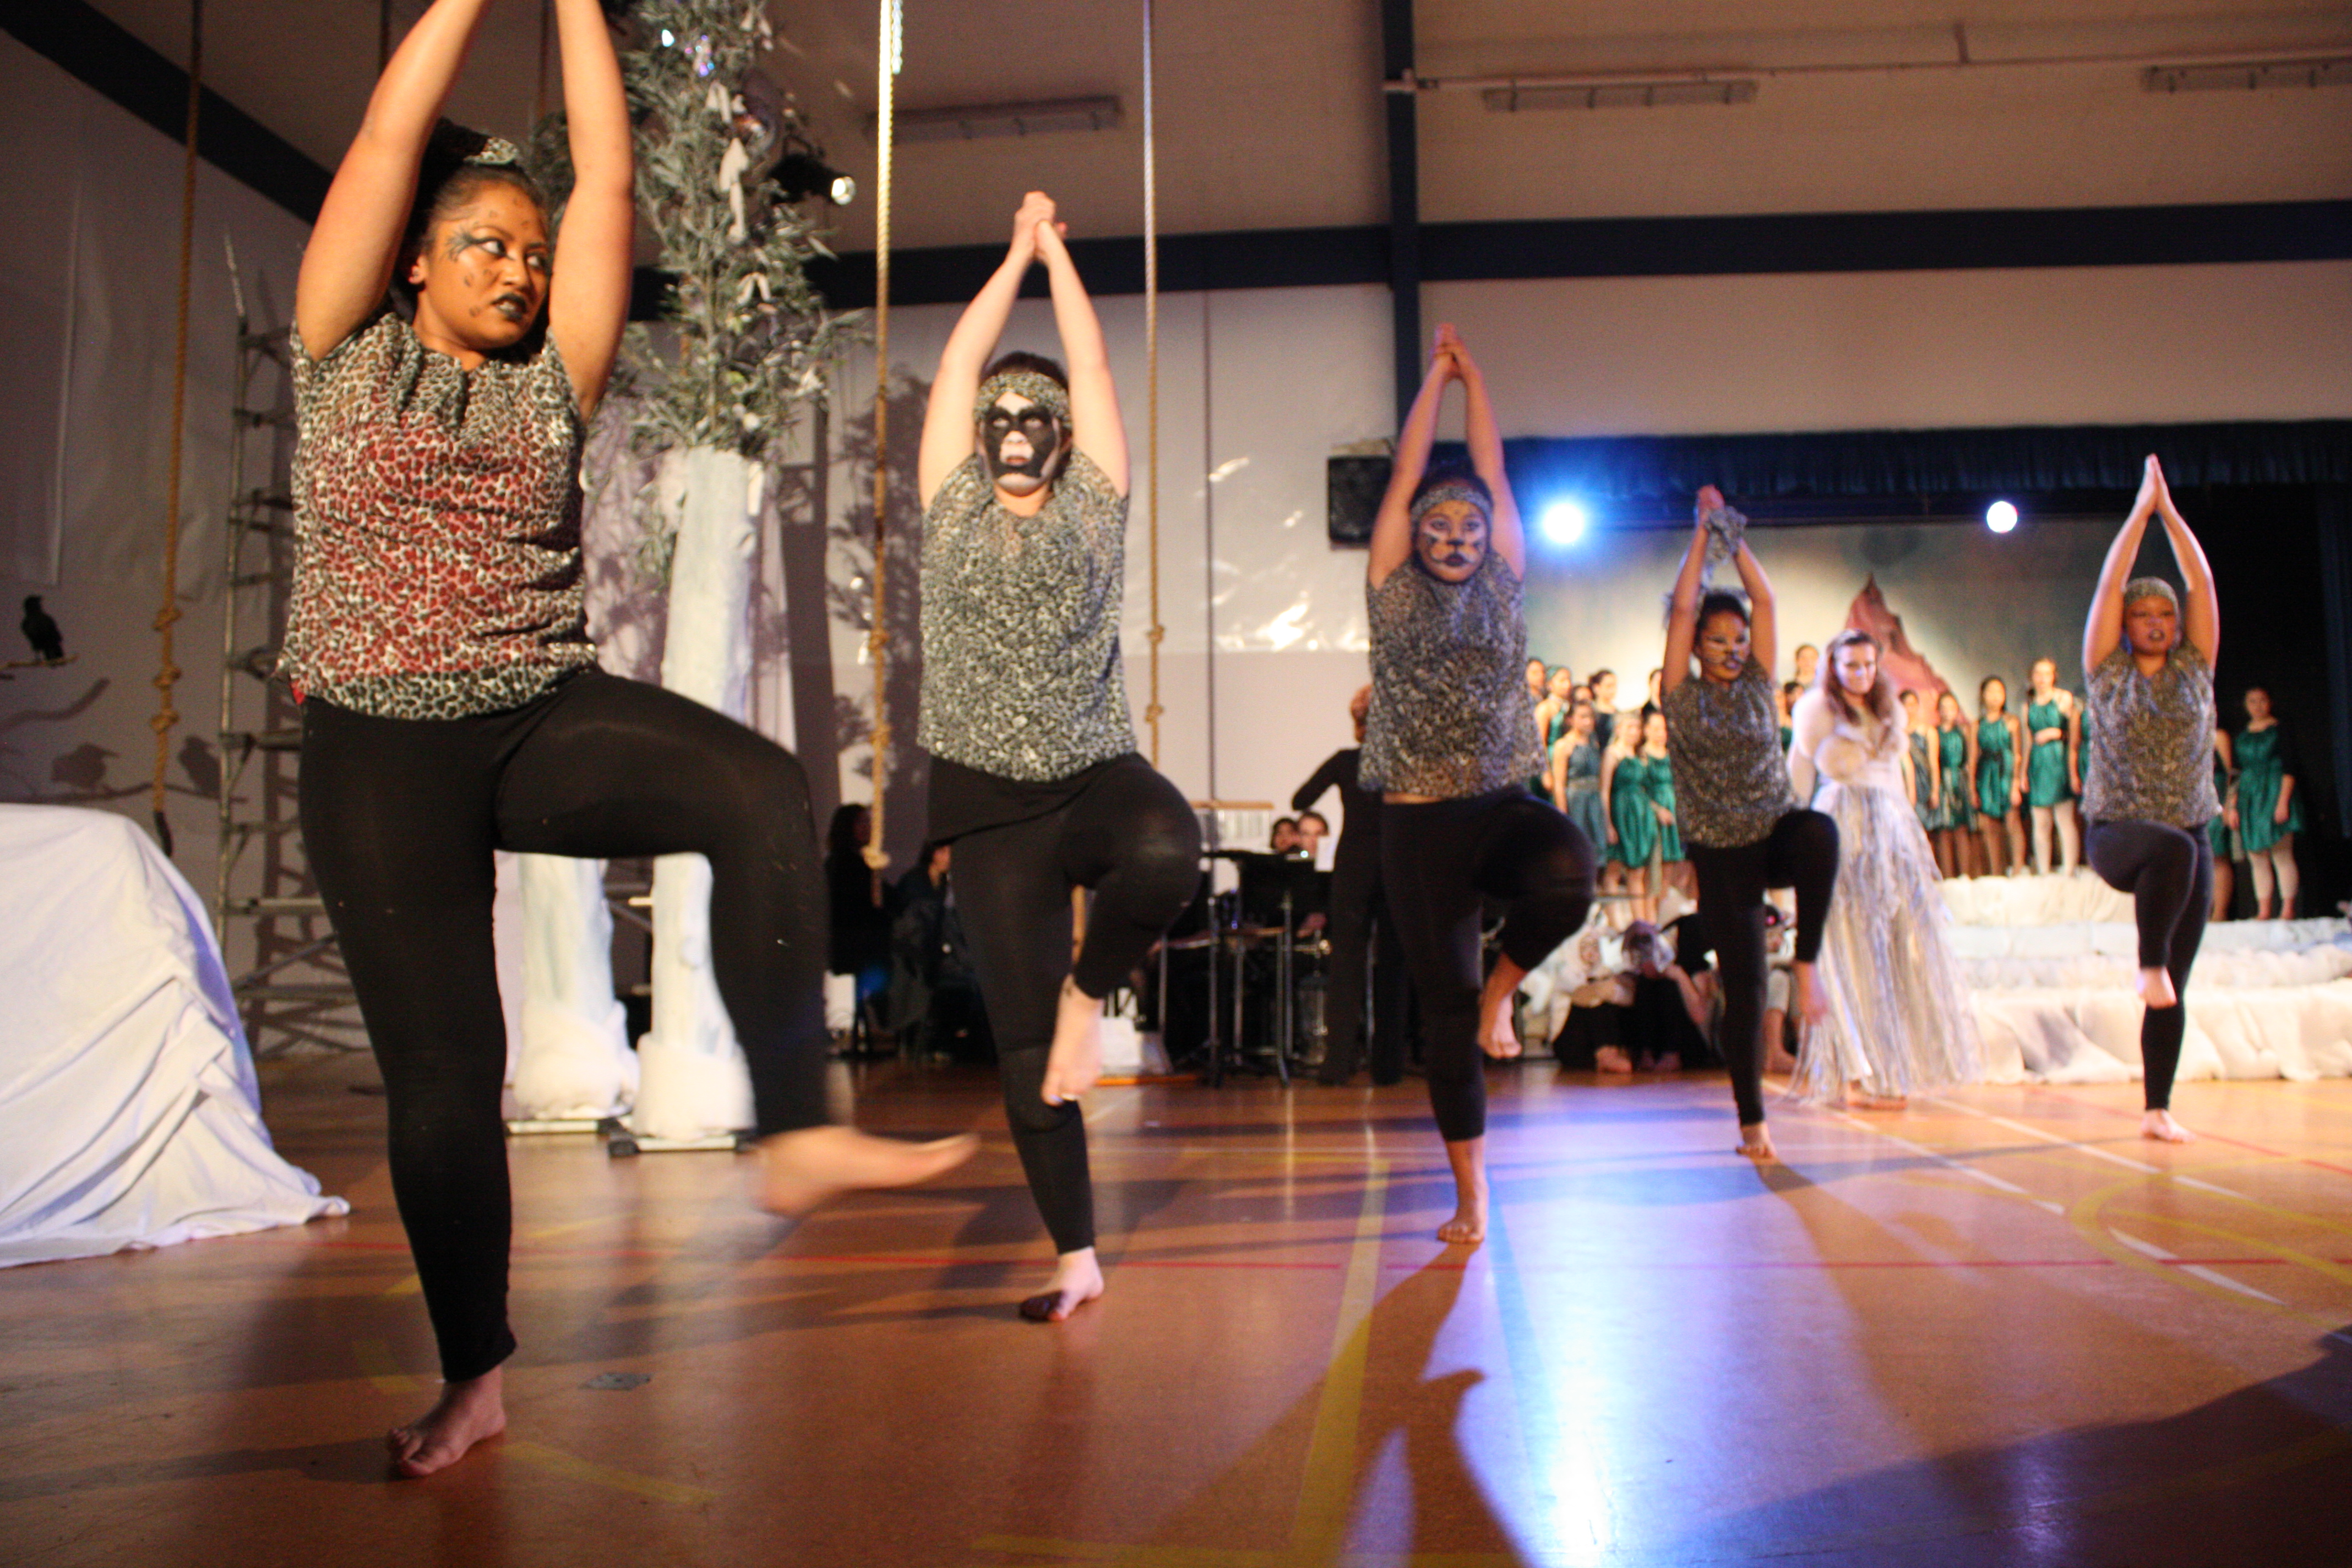 critical thinking in dance science education Critical thinking in the elementary classroom: critical thinking in education has been hotly 2 • critical thinking in the elementary classroom: problems and.